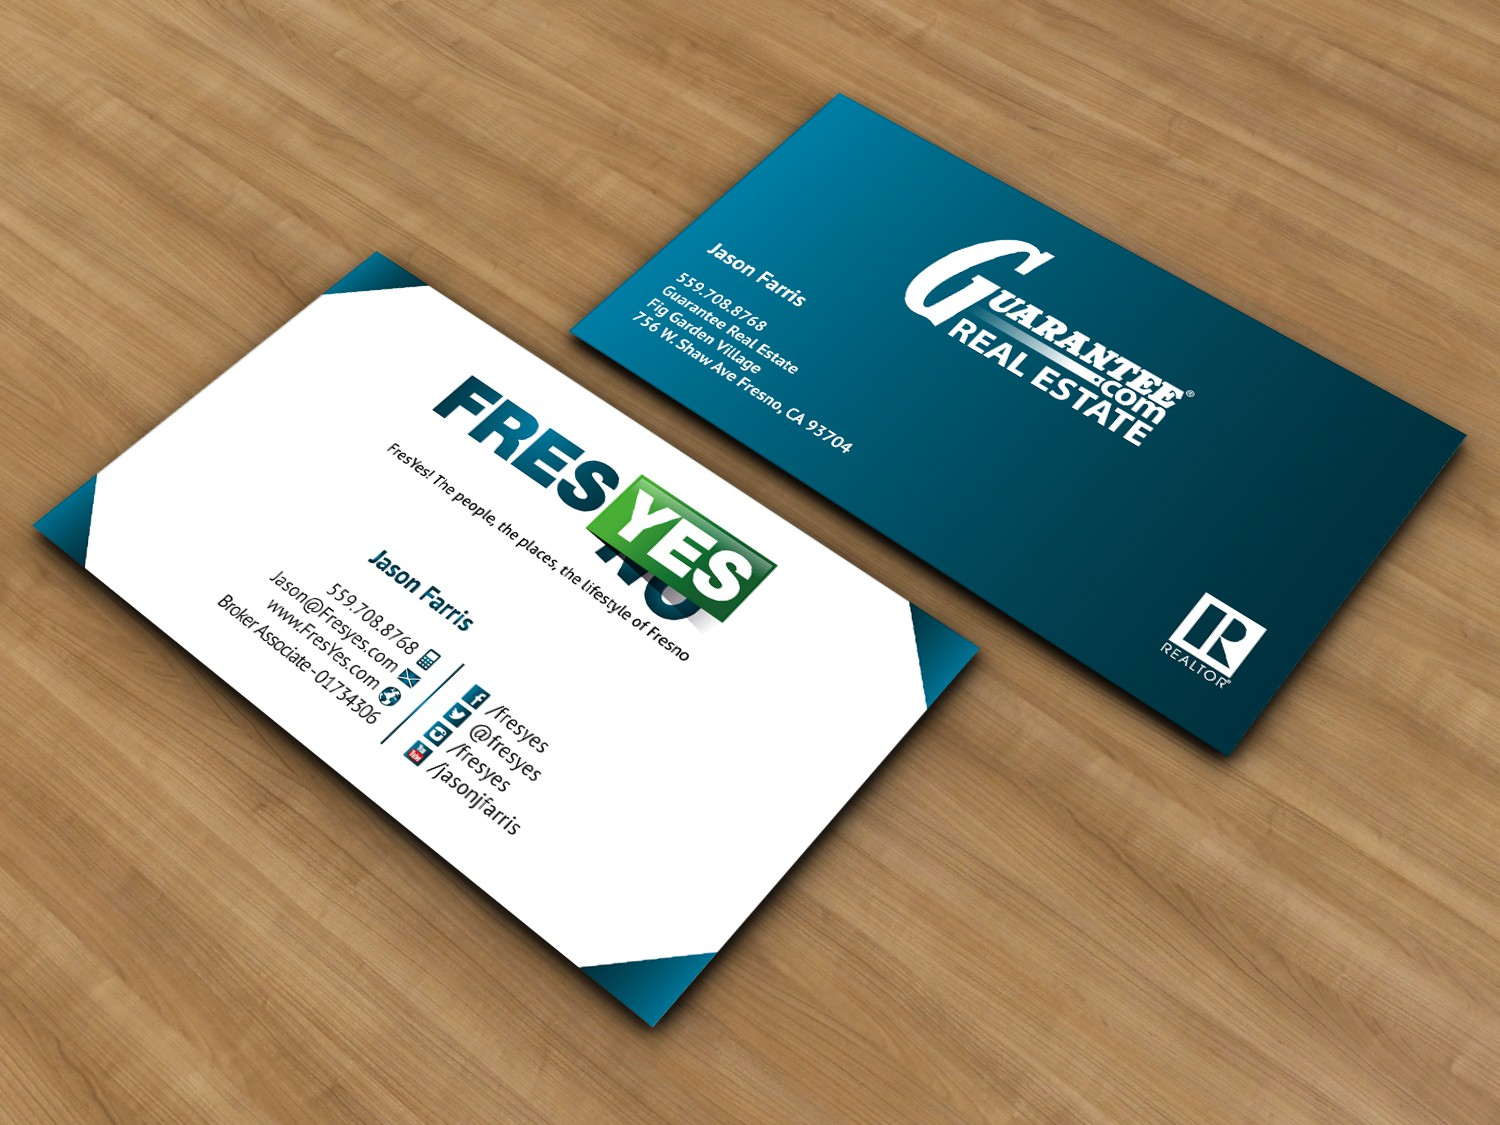 Help Guarantee Real Estate and Fresyes with a new stationery